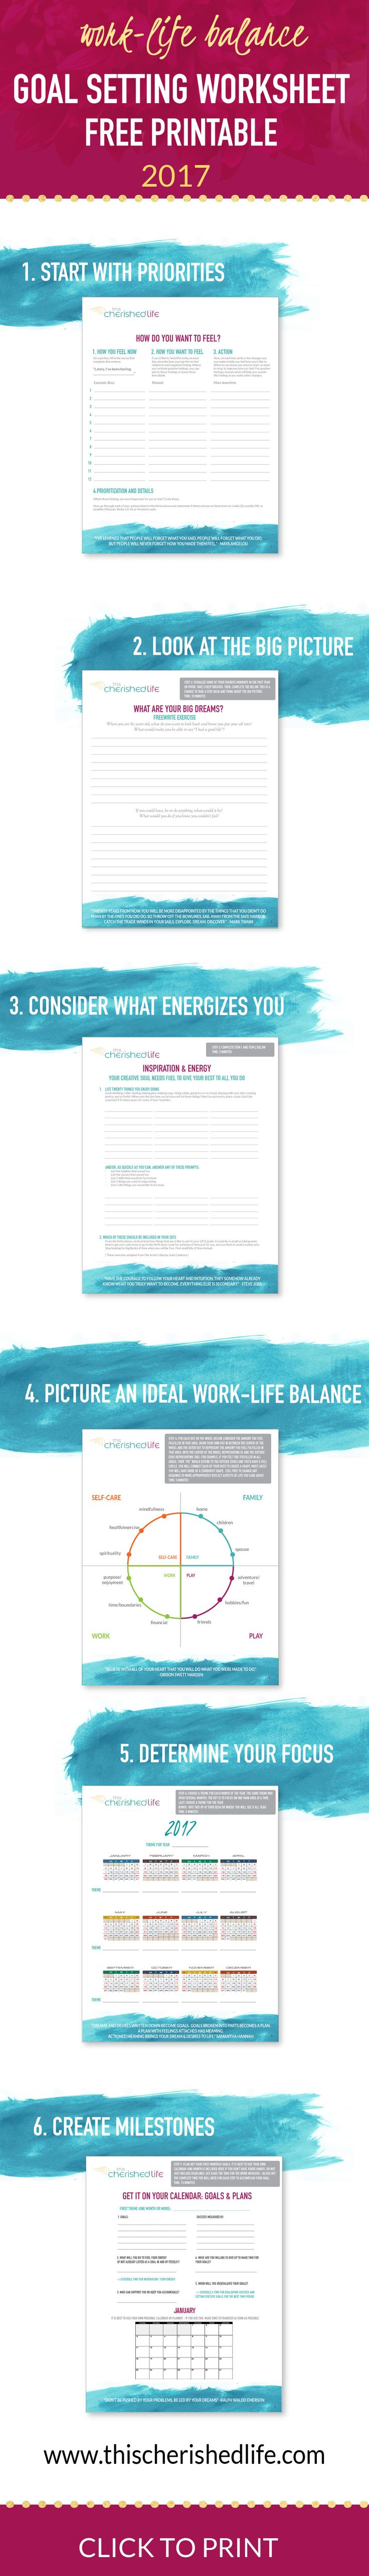 FREE 2017 goal setting printable worksheet - Set goals that matter for work life balance especially for busy moms setting goals, goal setting #goals #motivation